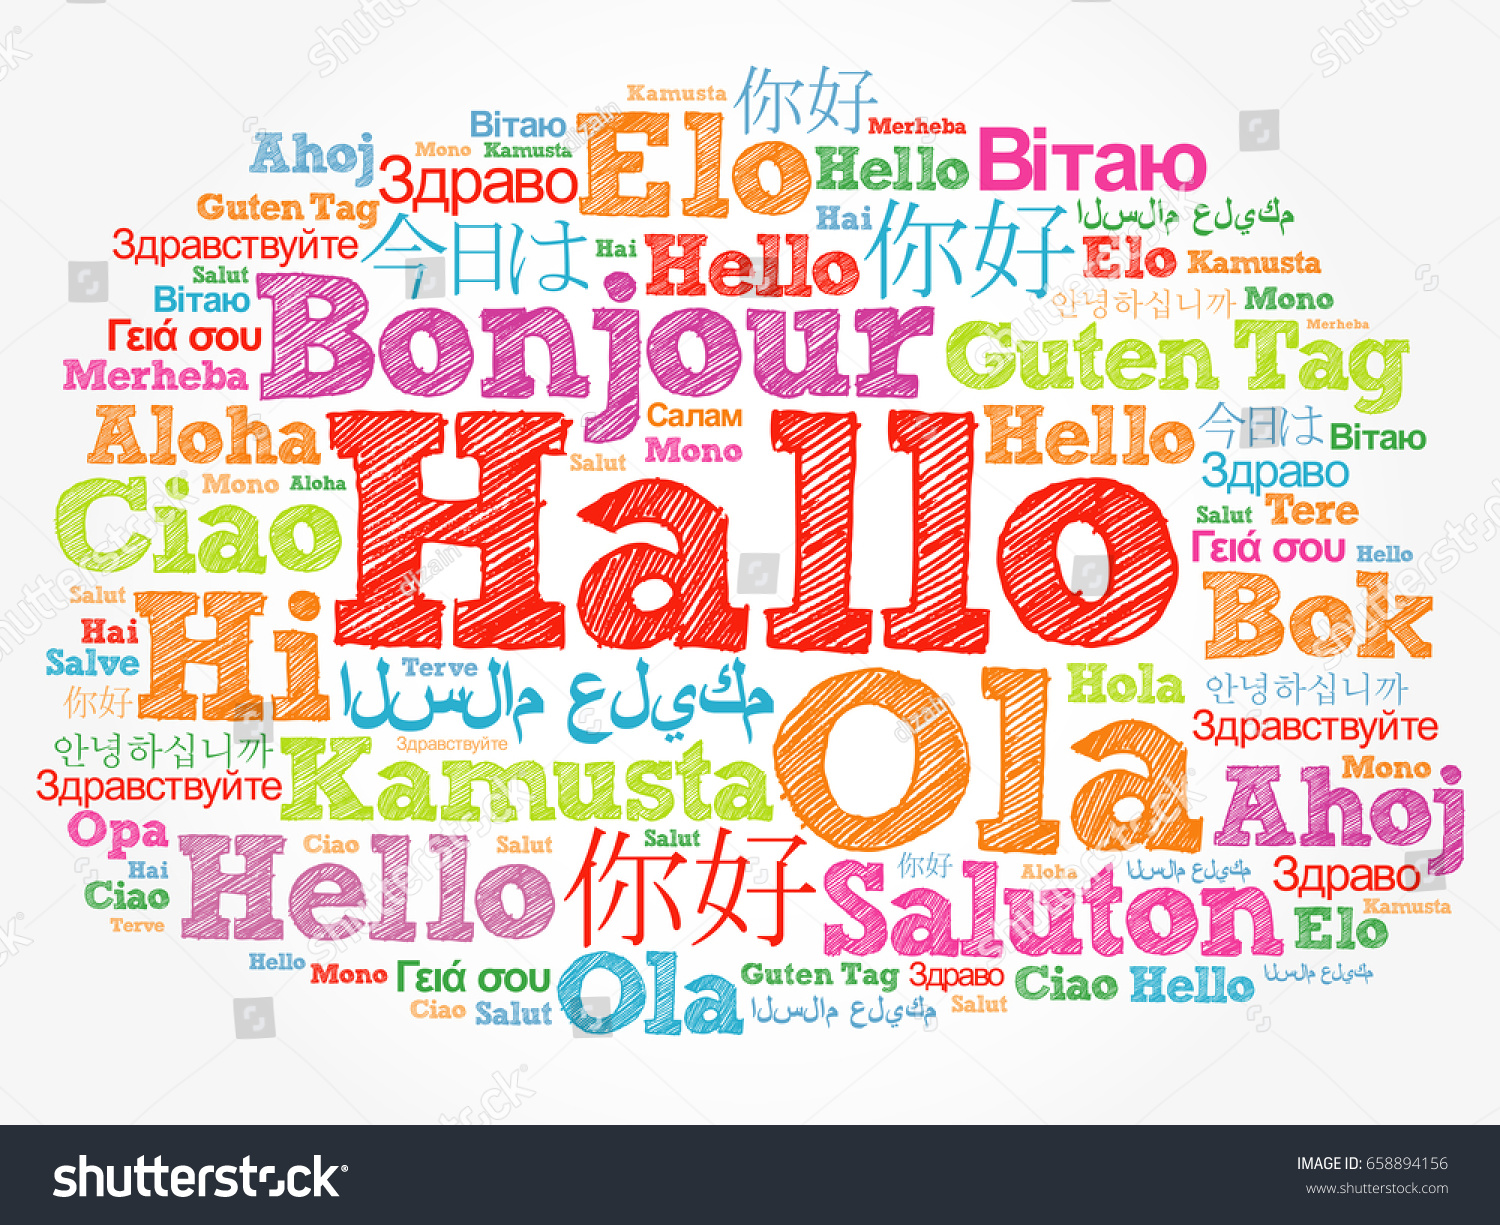 Hallo hello greeting german word cloud stock illustration hallo hello greeting in german word cloud in different languages of the world kristyandbryce Gallery